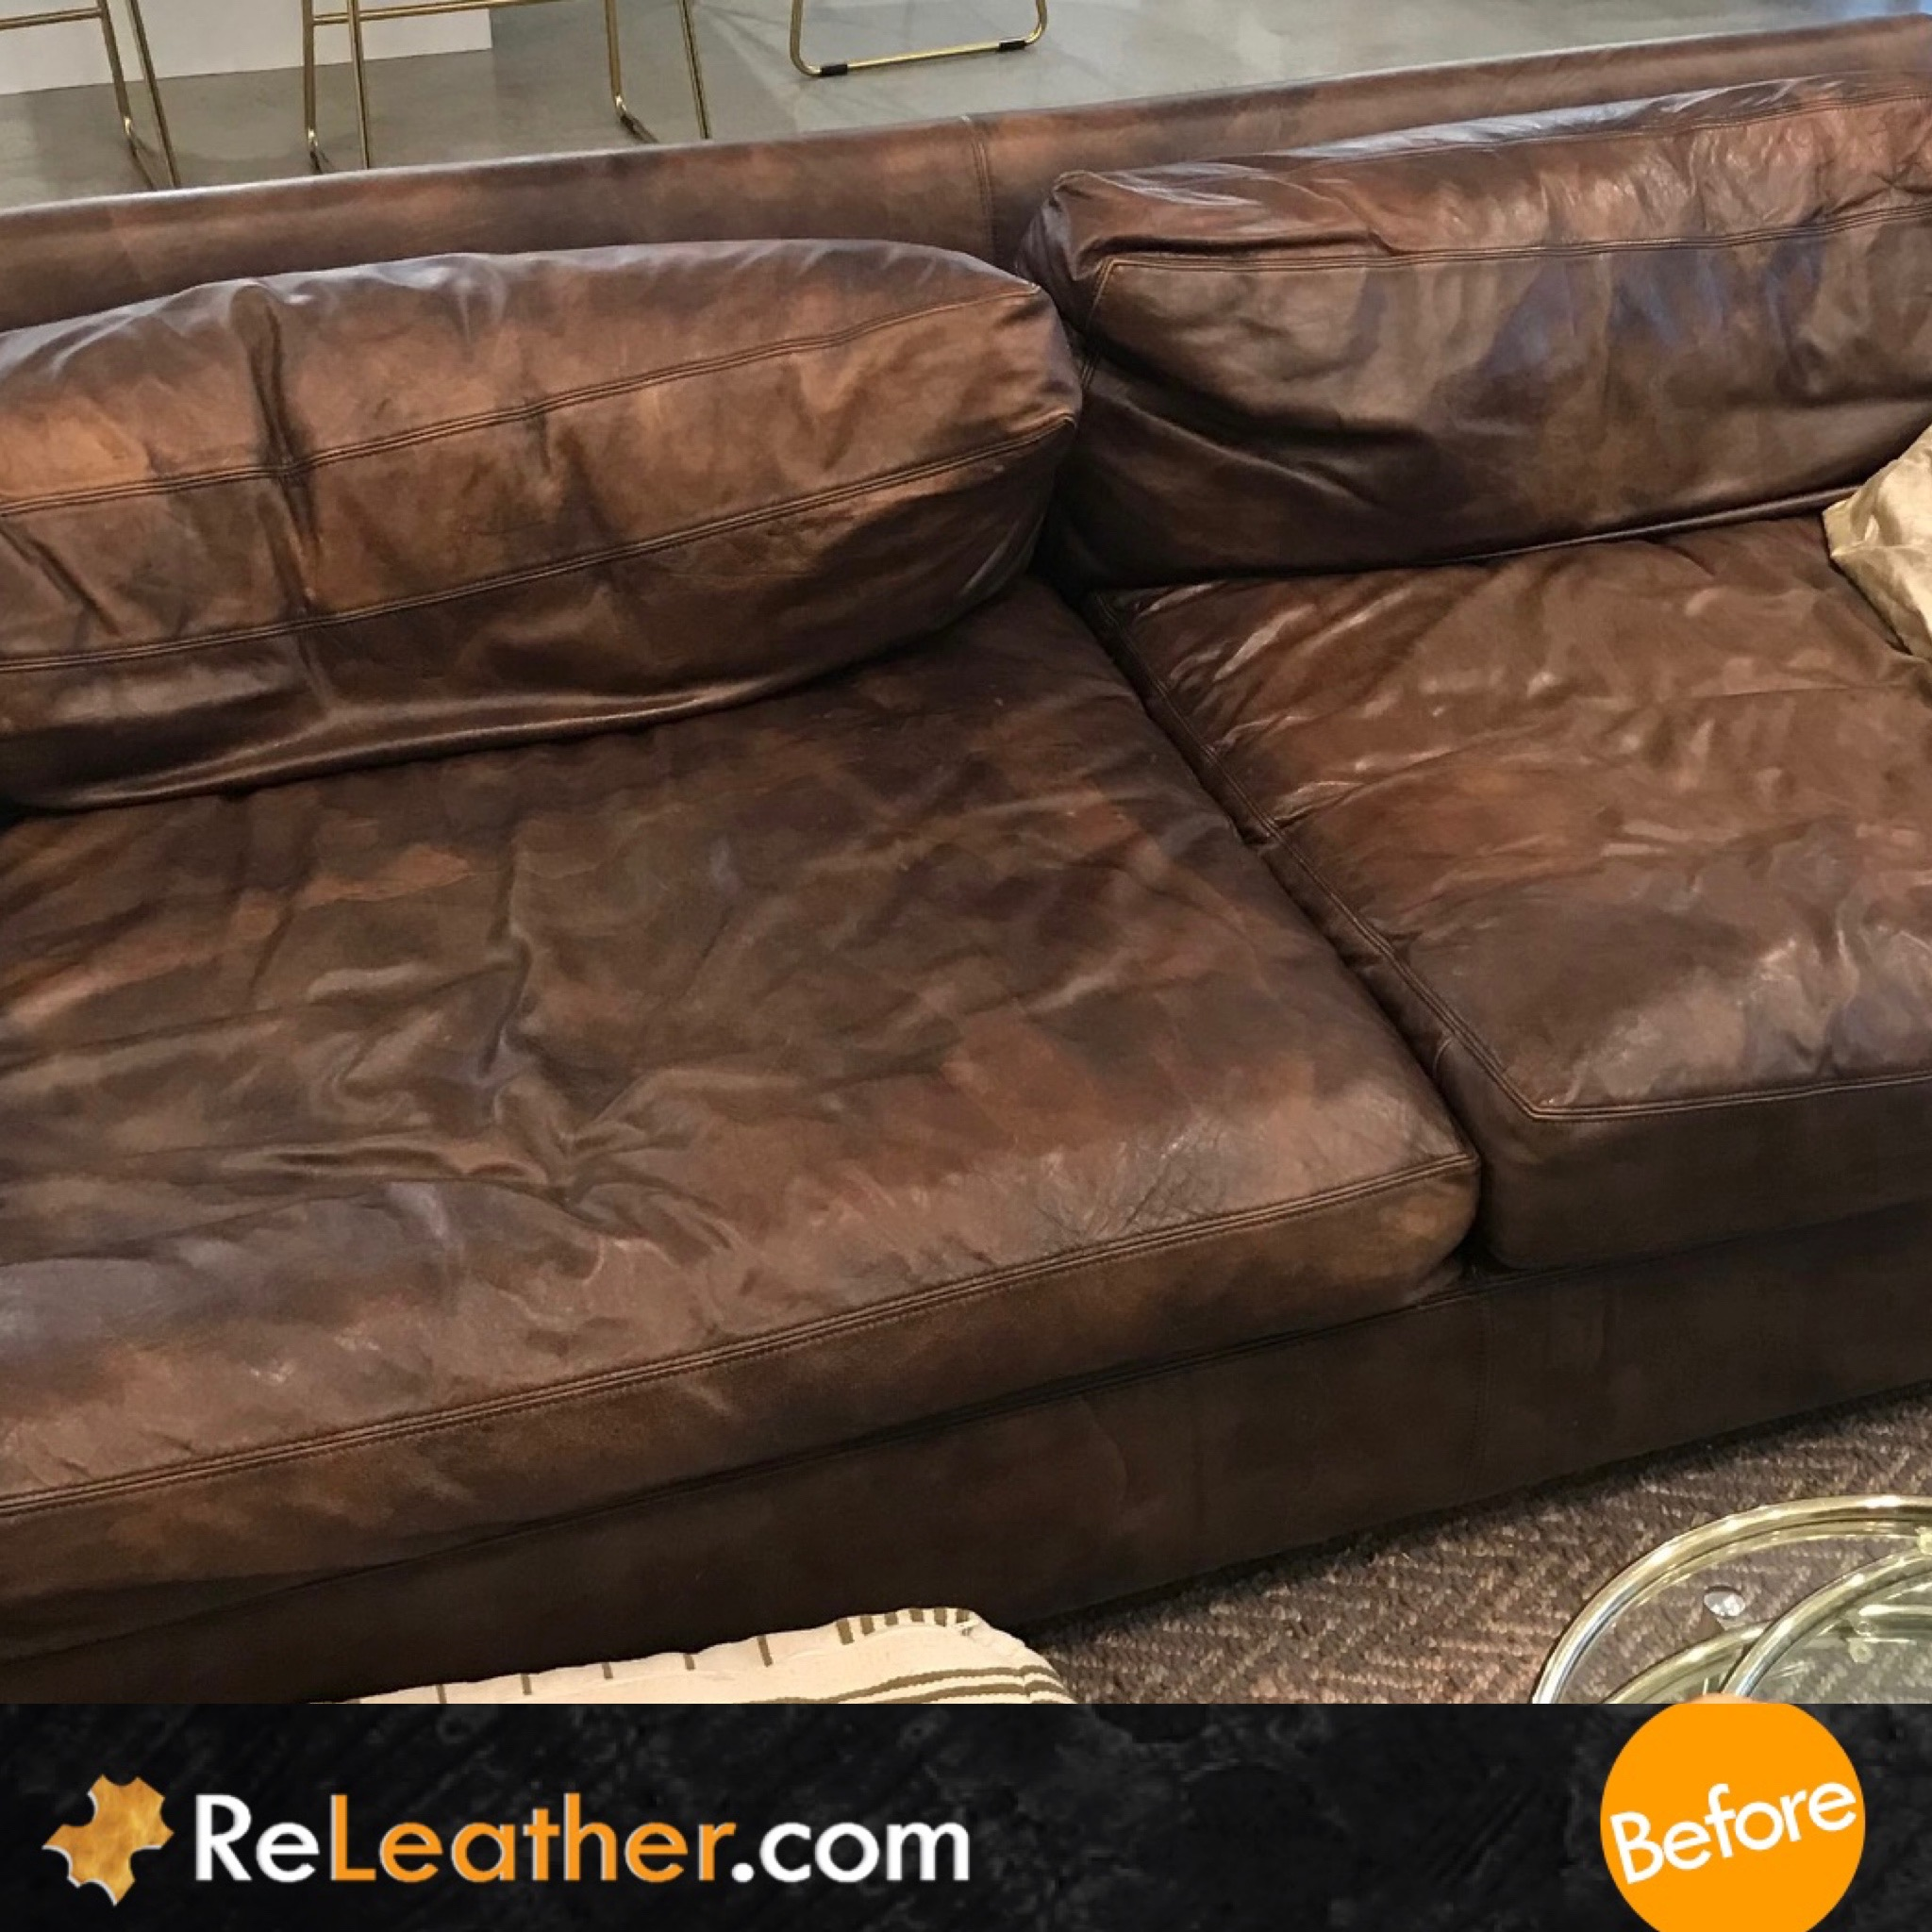 Before Picture of Leather Cleaning Sofa in San Diego